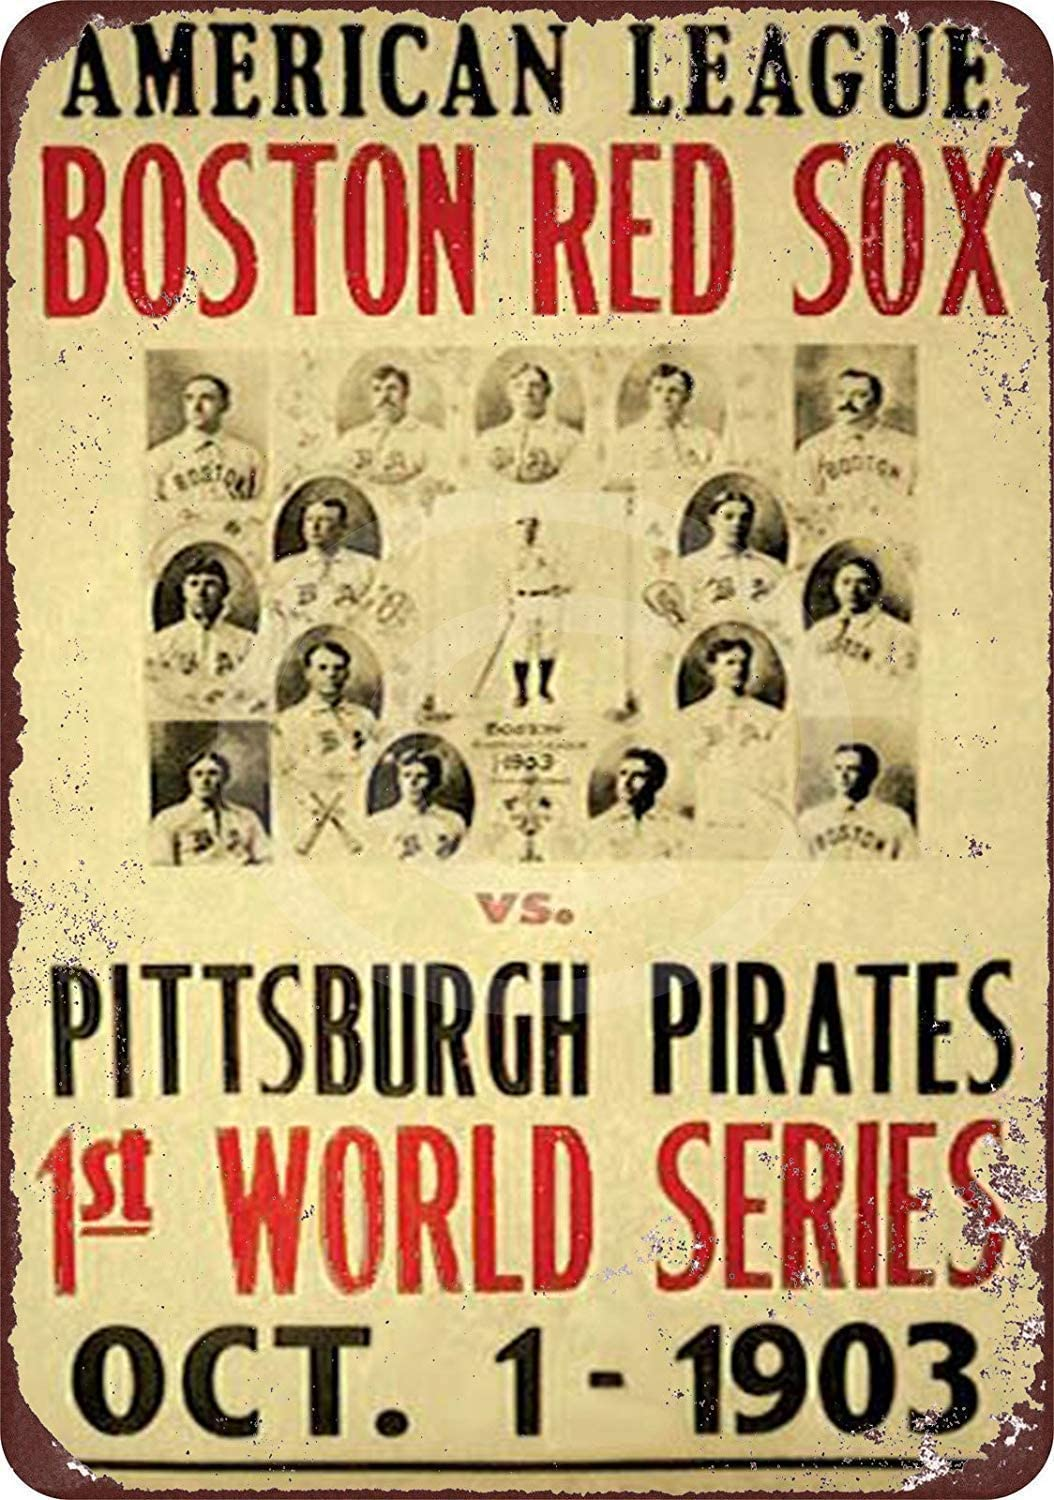 INNAPER Funny Retro Wall Décor Tin Sign for Home Red Sox Pirates 1903 World Series Rustic Vintage Look Aluminum Metal Sign 8x12 Inches (YHA078)